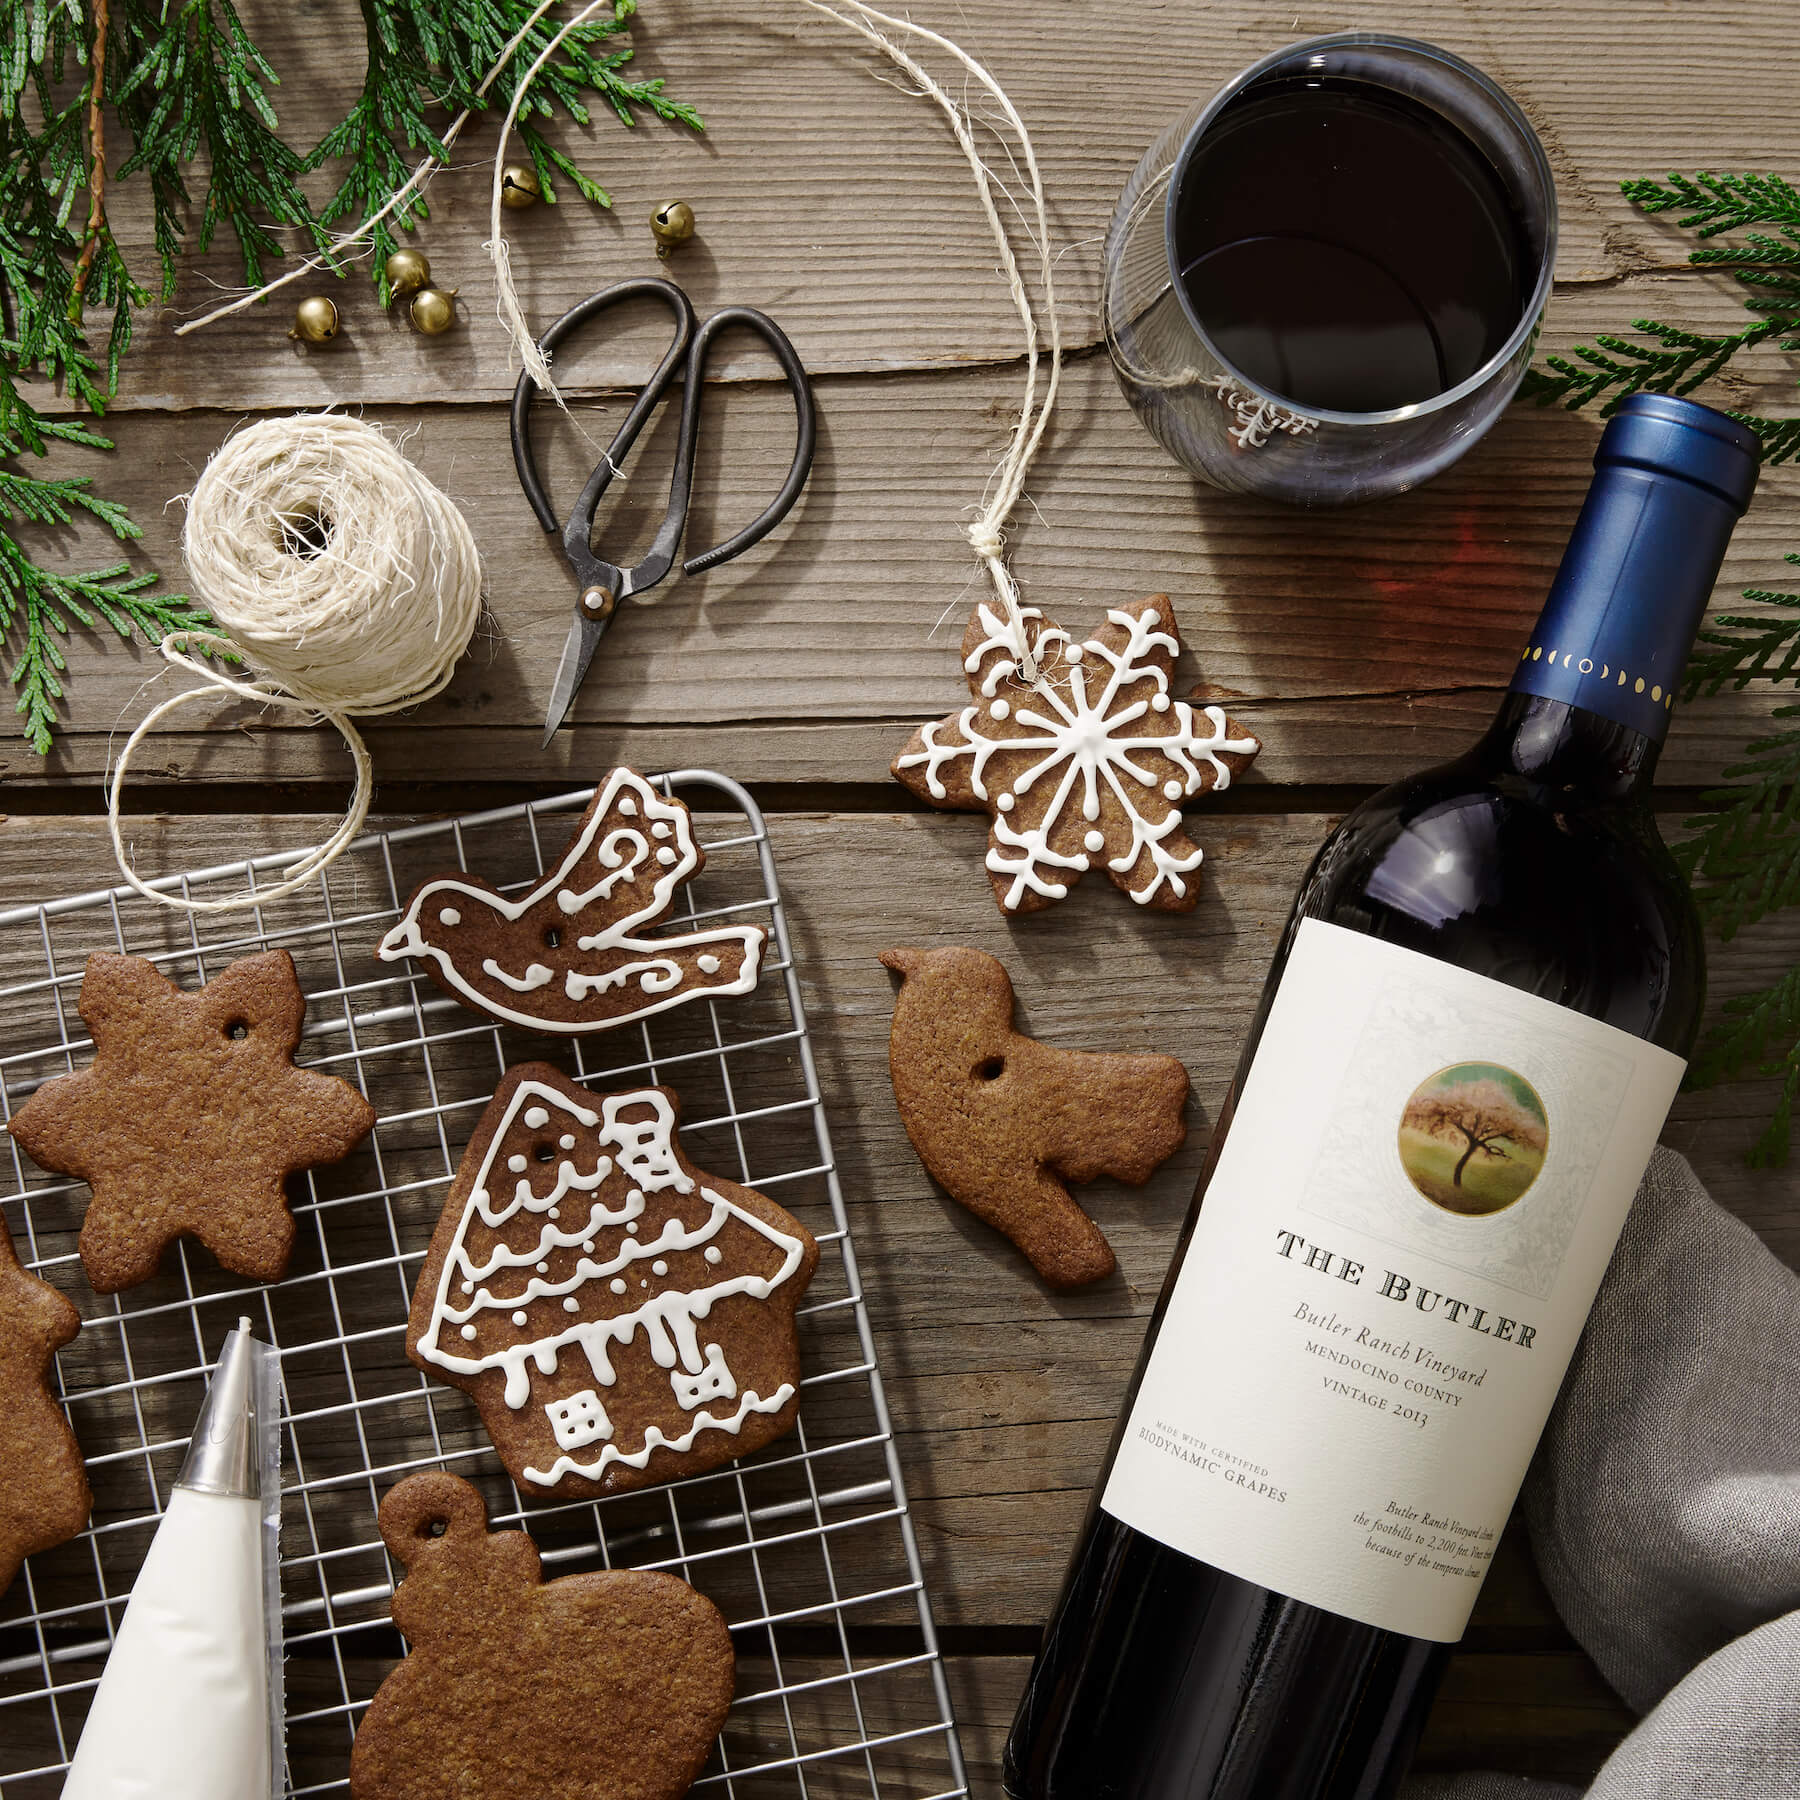 "DIY Cookie Ornaments and Bonterra's ""The Butler"" wine"